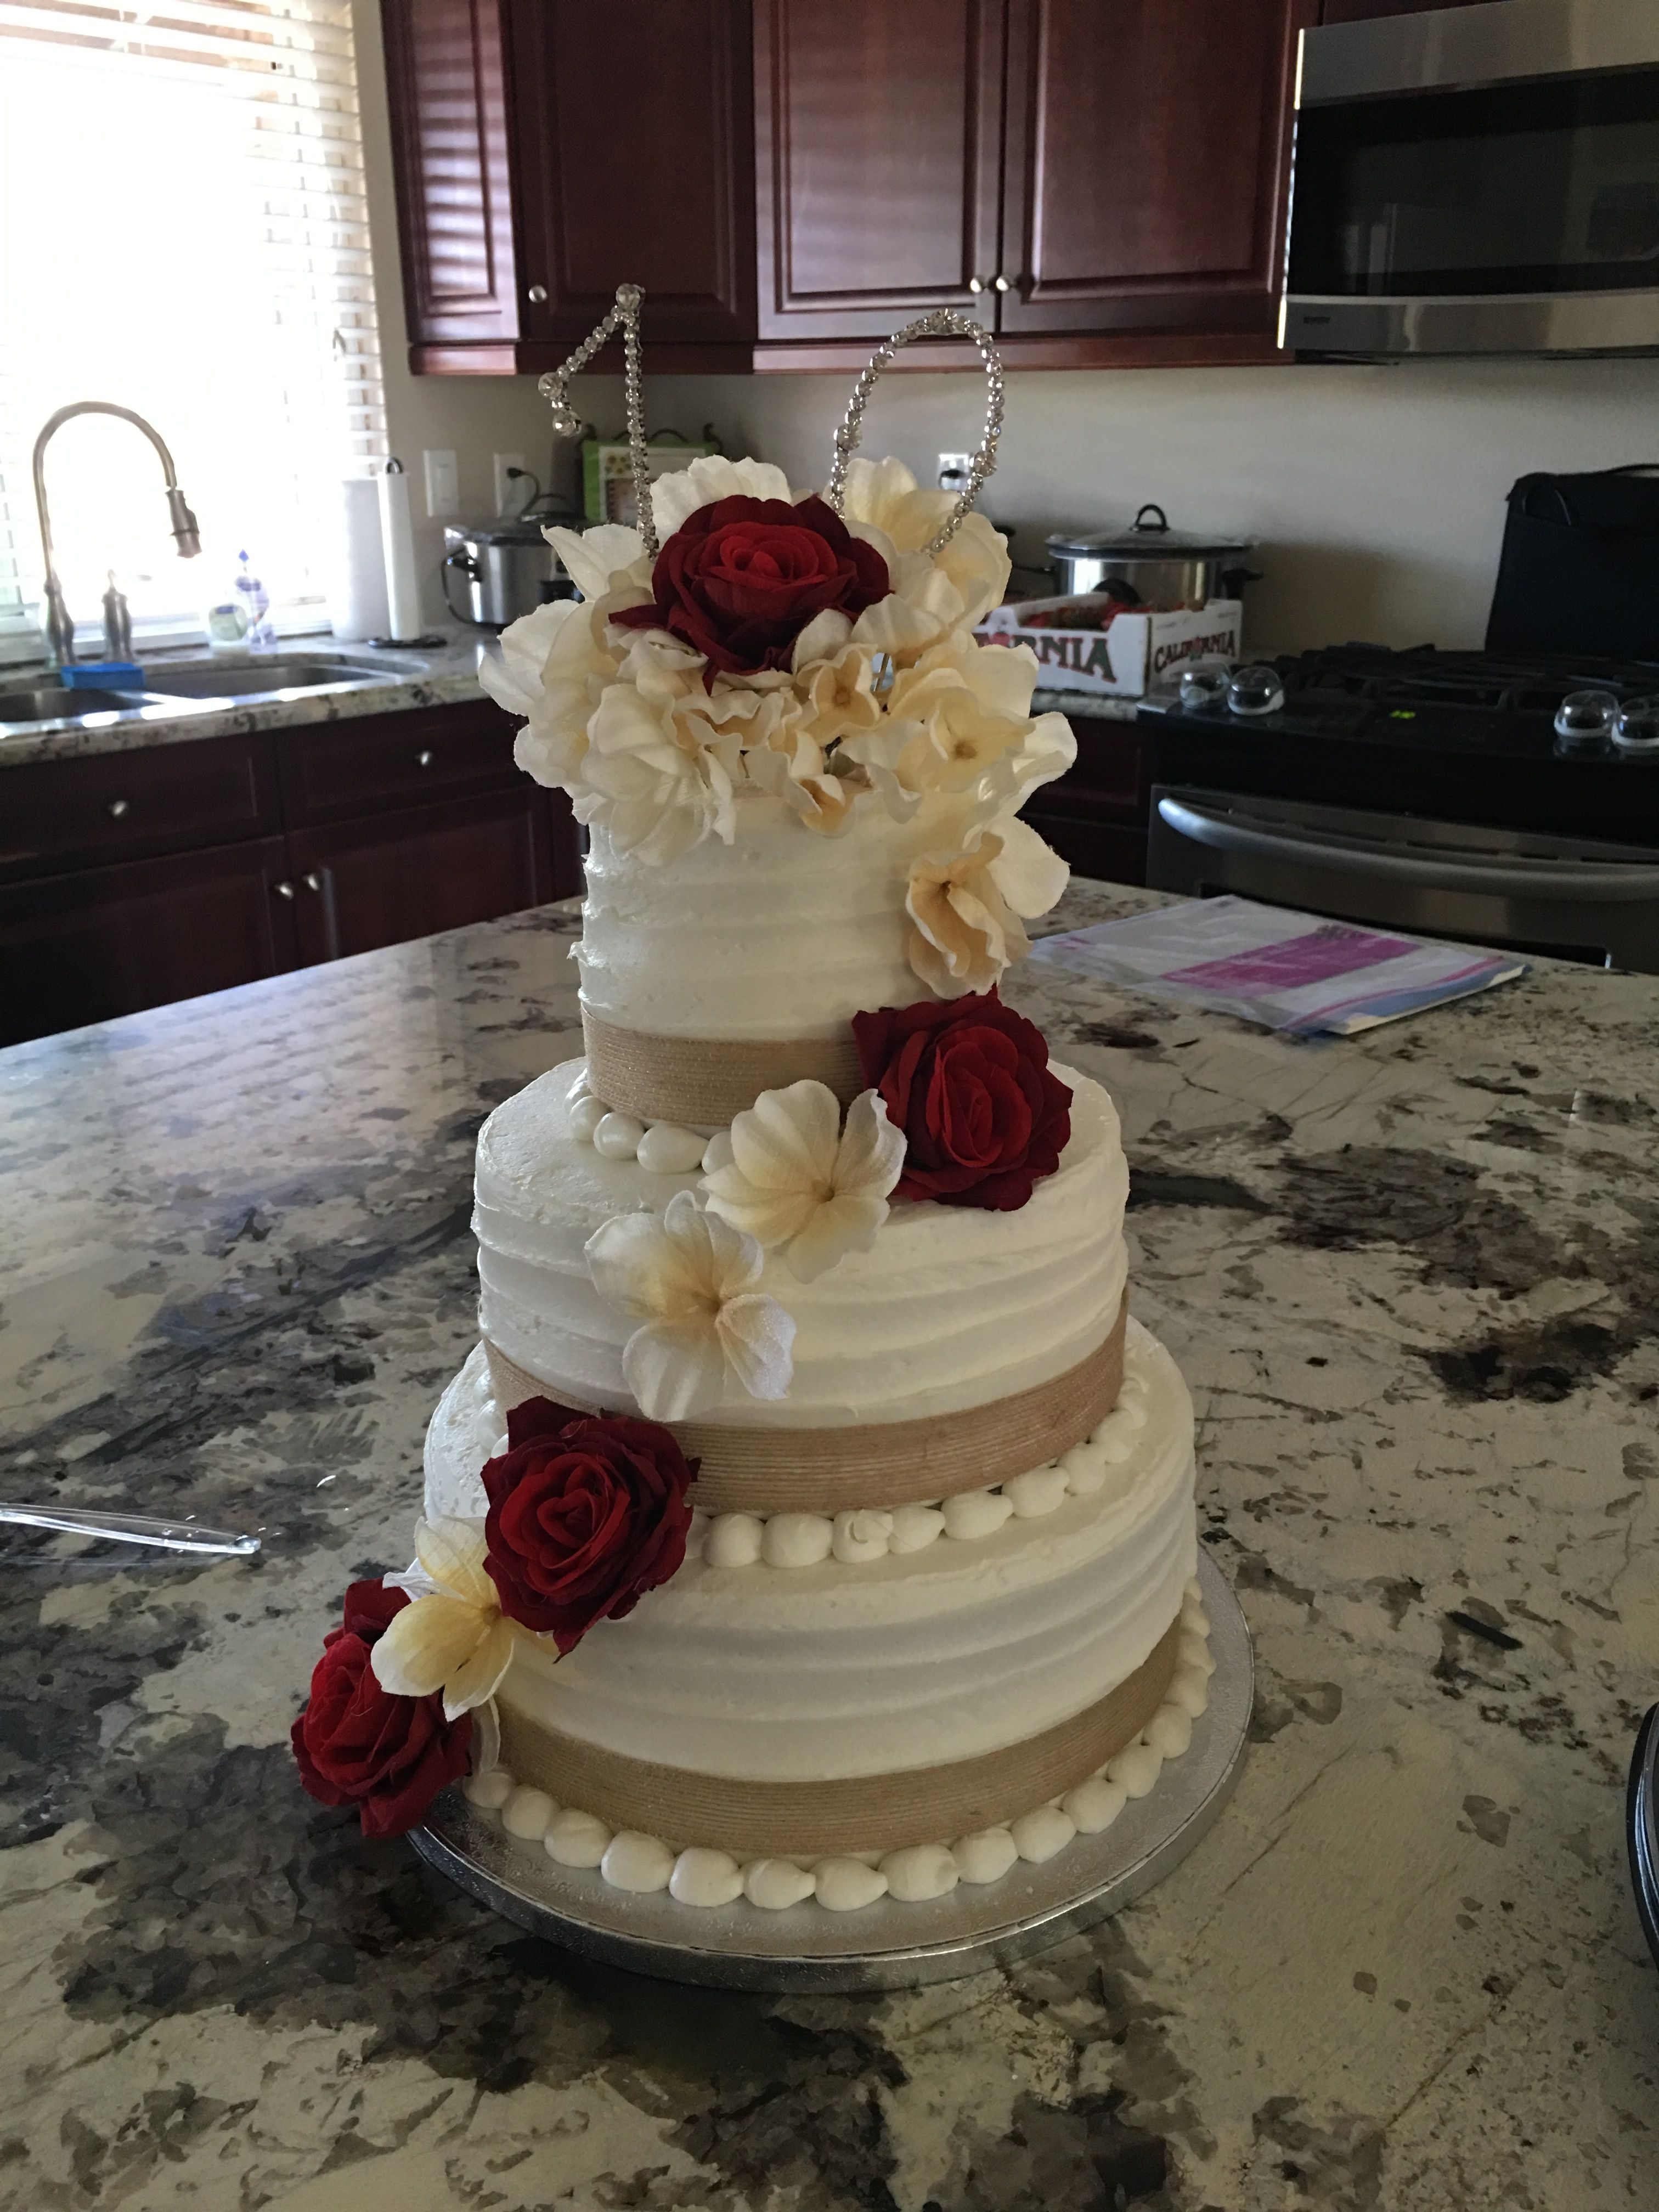 Rustic Country Wedding Cake Go Buy A Three Tier Cake From Sam S Club And Decorate It Save Yo Sams Club Wedding Cake Country Wedding Cakes Tiered Wedding Cake